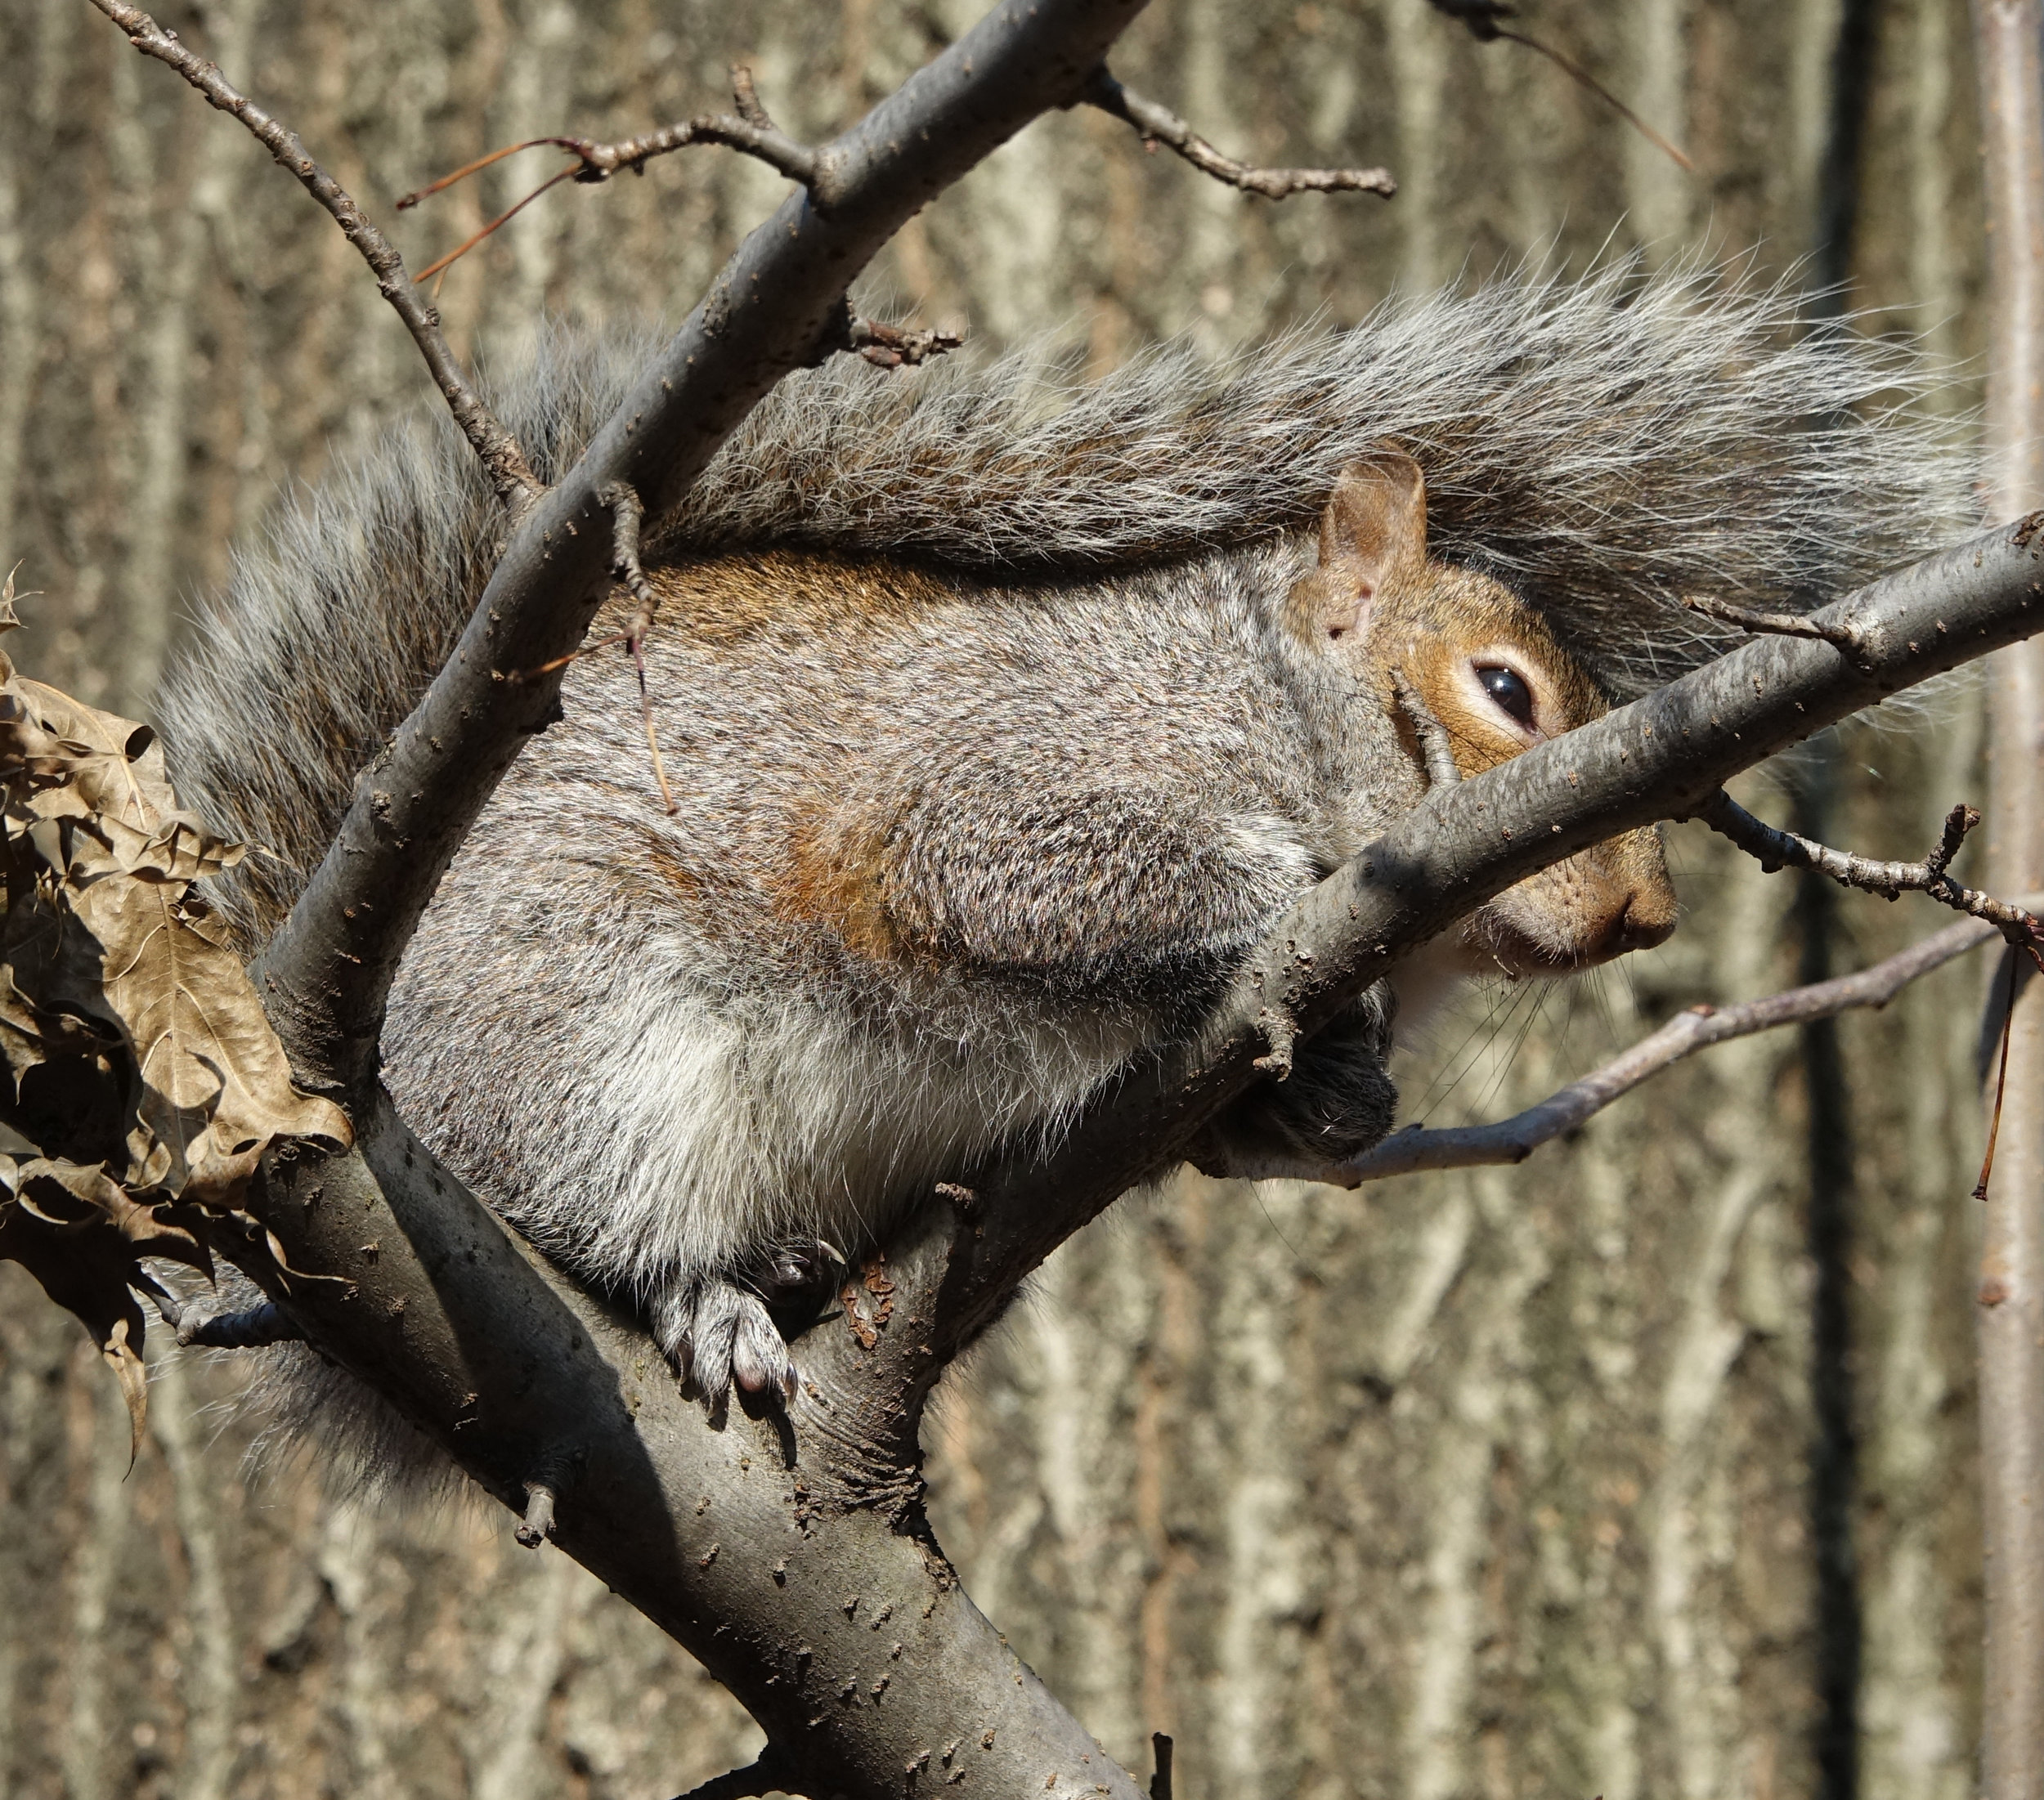 EASTERN GRAY SQUIRREL  (Sciurus carolinensis),  Central Park, NYC, February 2019